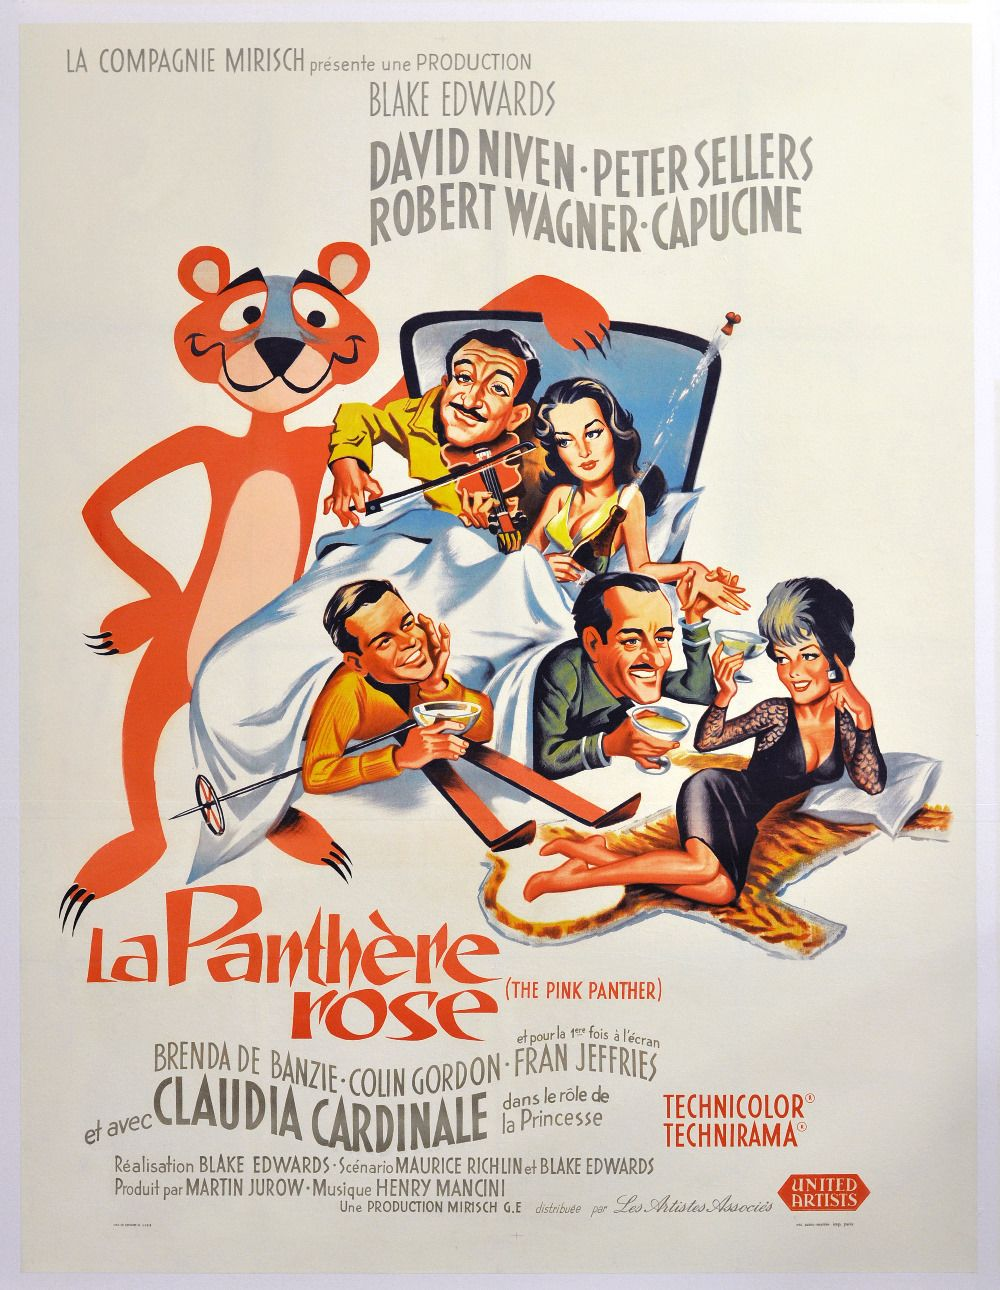 Affiches posters et images de la panth re rose 1963 - Rosier panthere rose ...